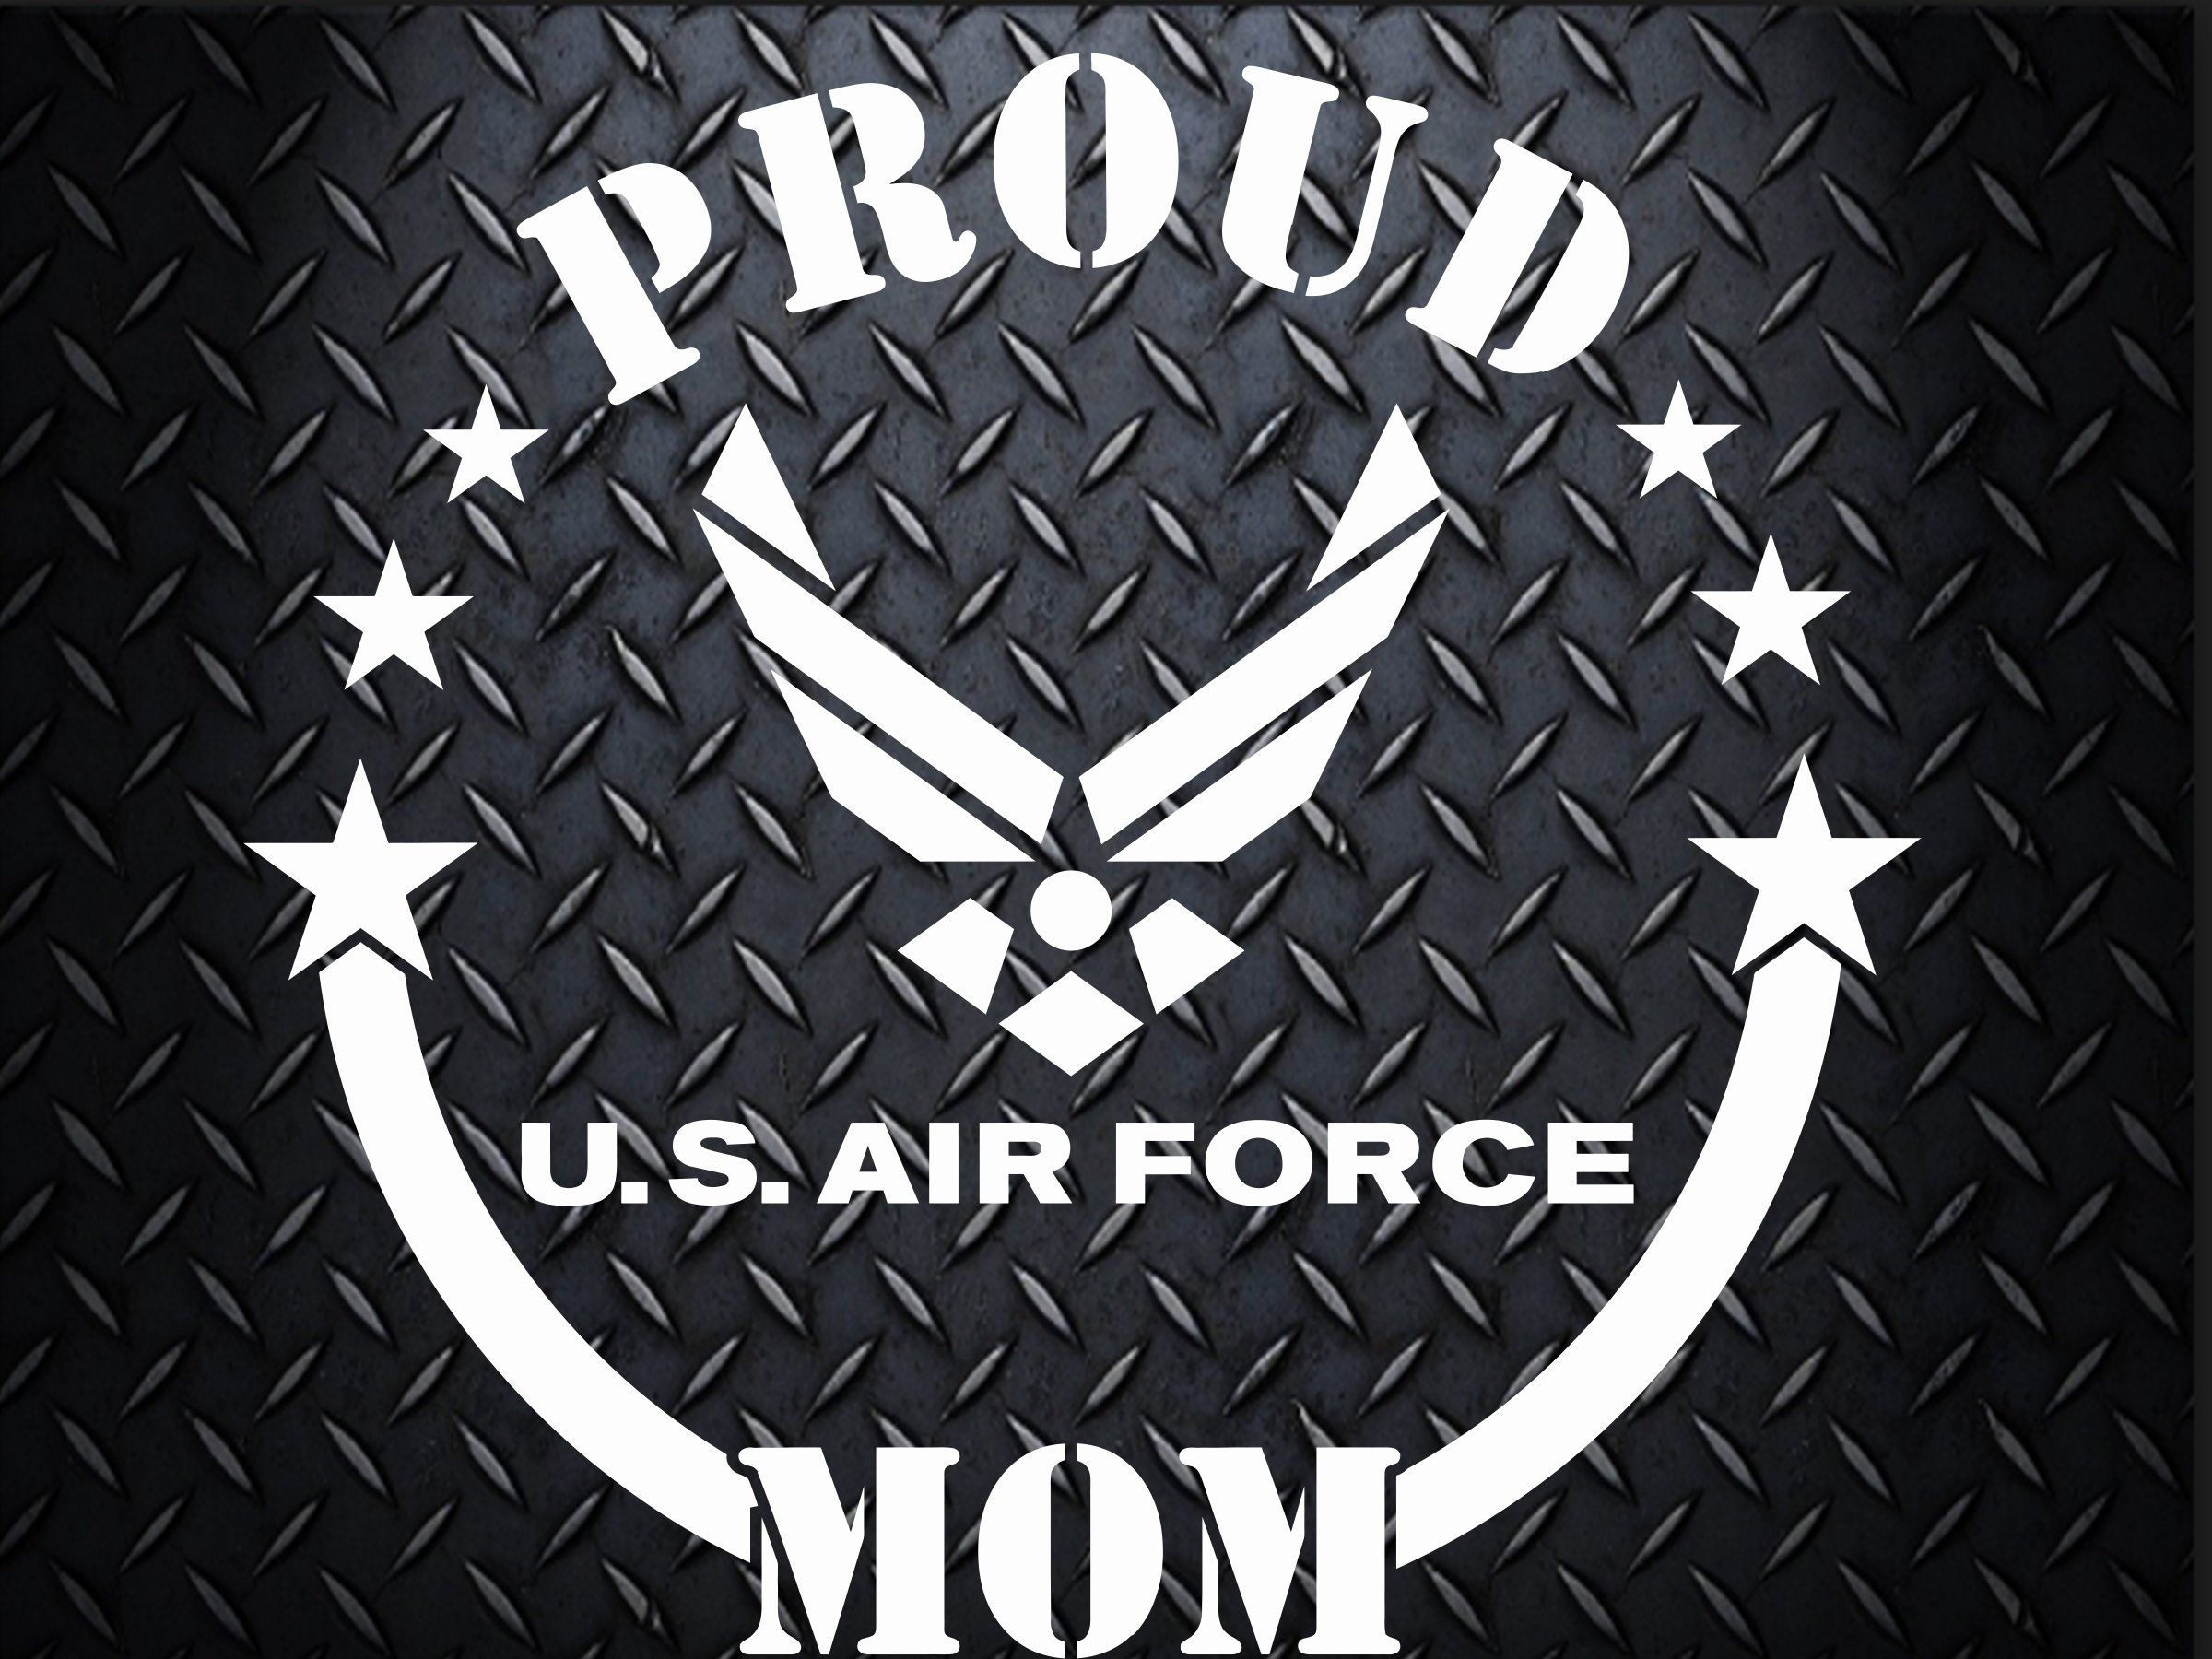 Air Force Car decal 6.5 inch decal, Proud Mom, Proud Dad